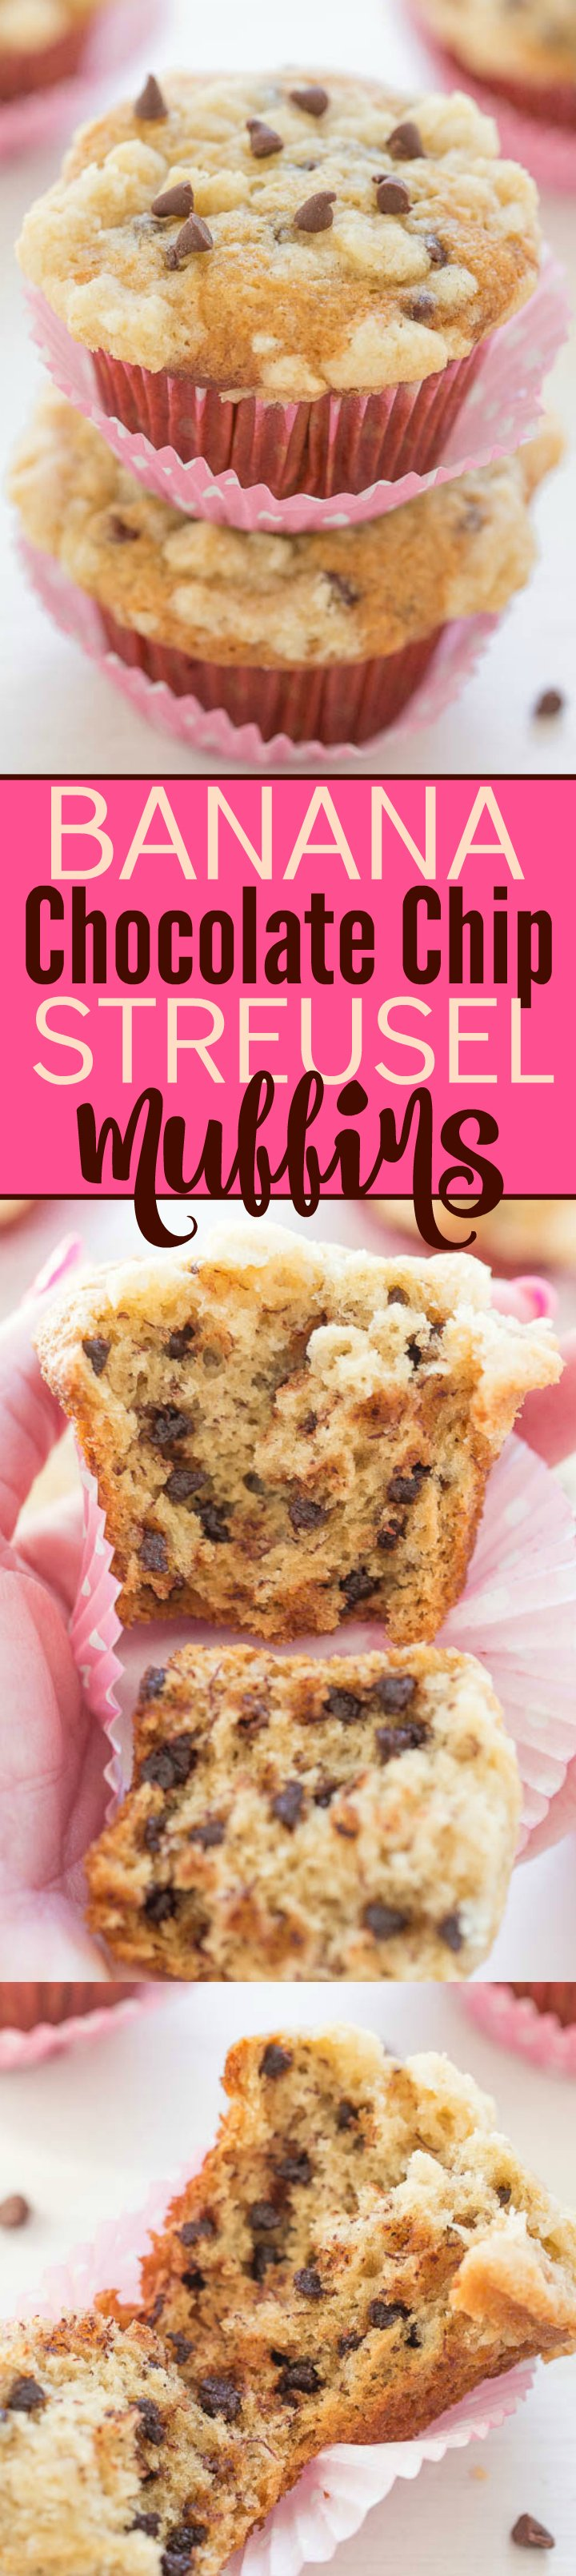 Banana Chocolate Chip Streusel Muffins Collage